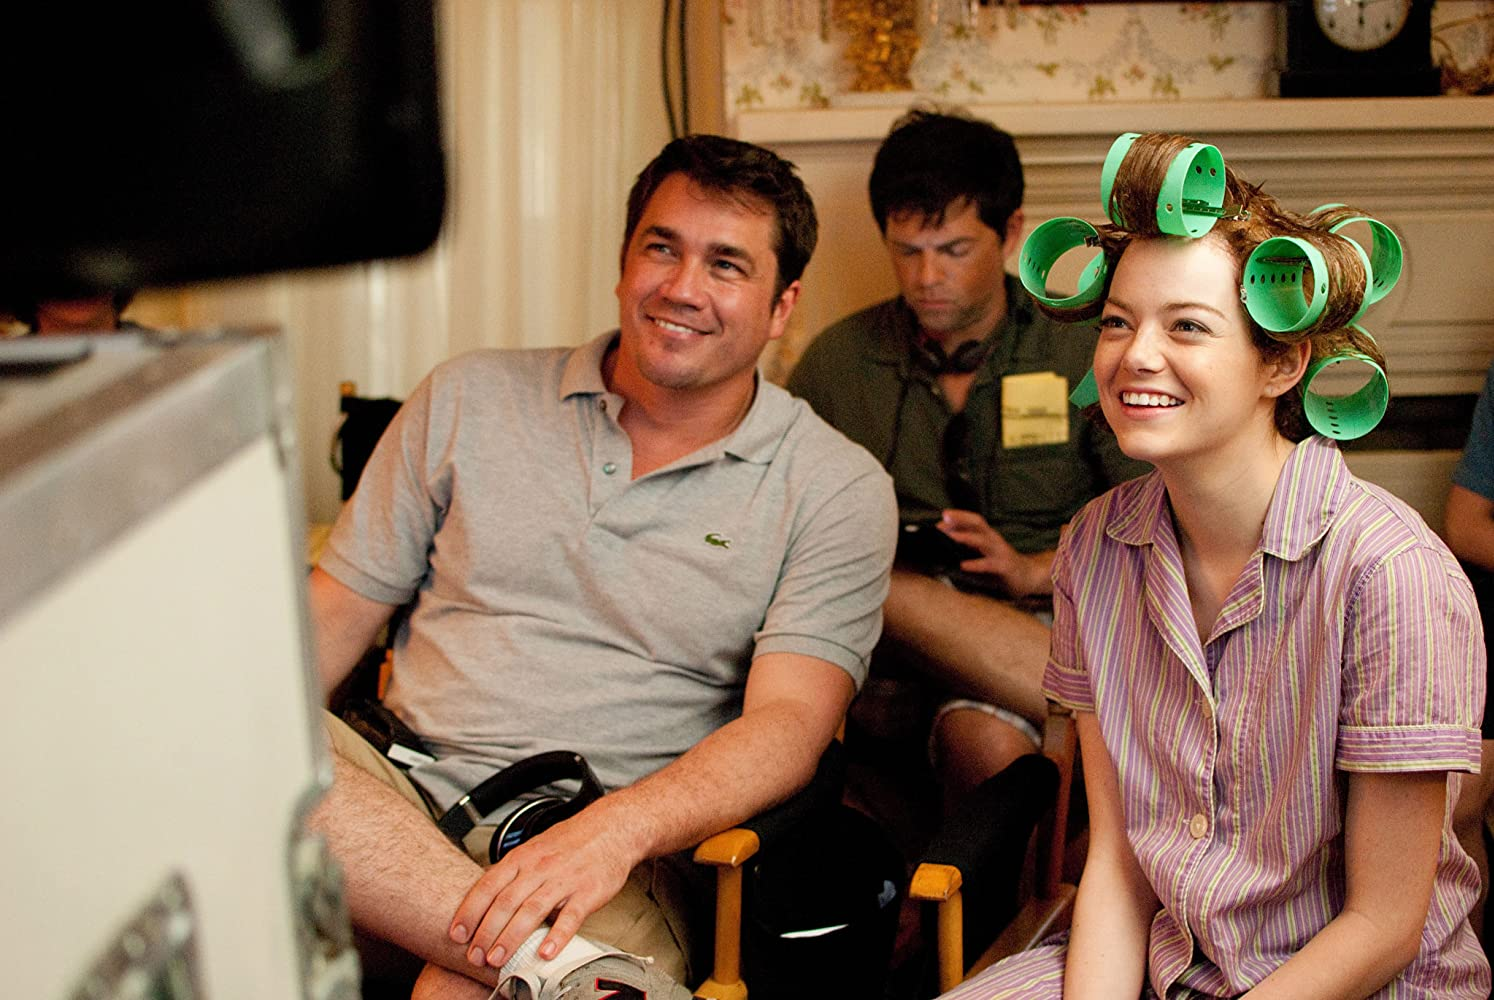 Brunson Green, Tate Taylor, and Emma Stone in The Help (2011)